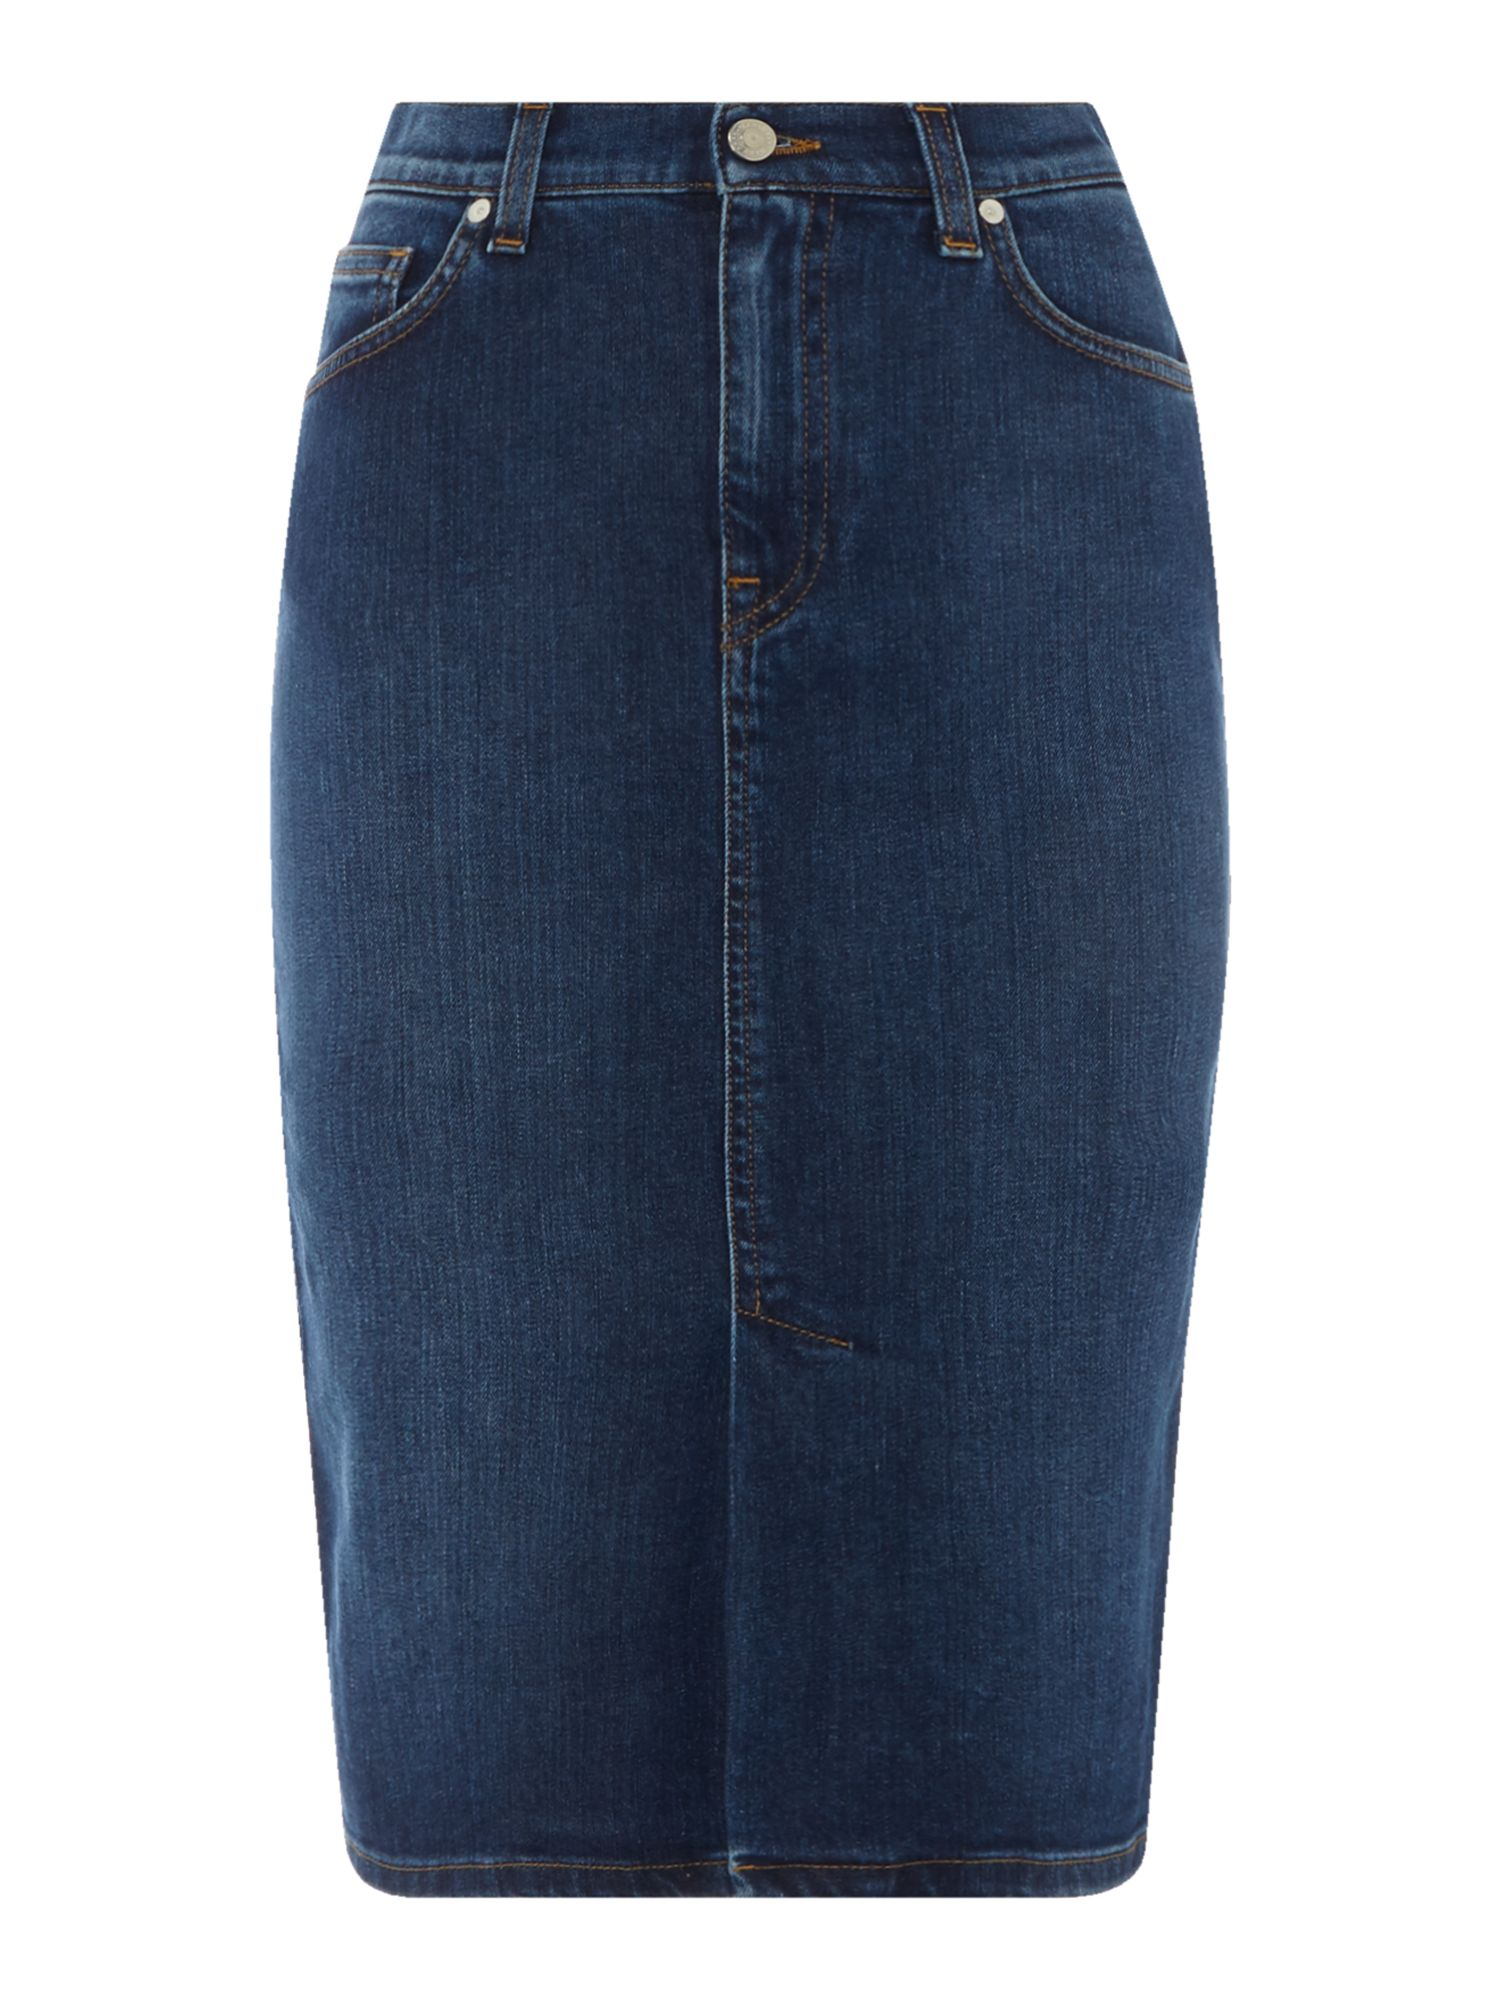 Gant Denim pencil skirt, Denim